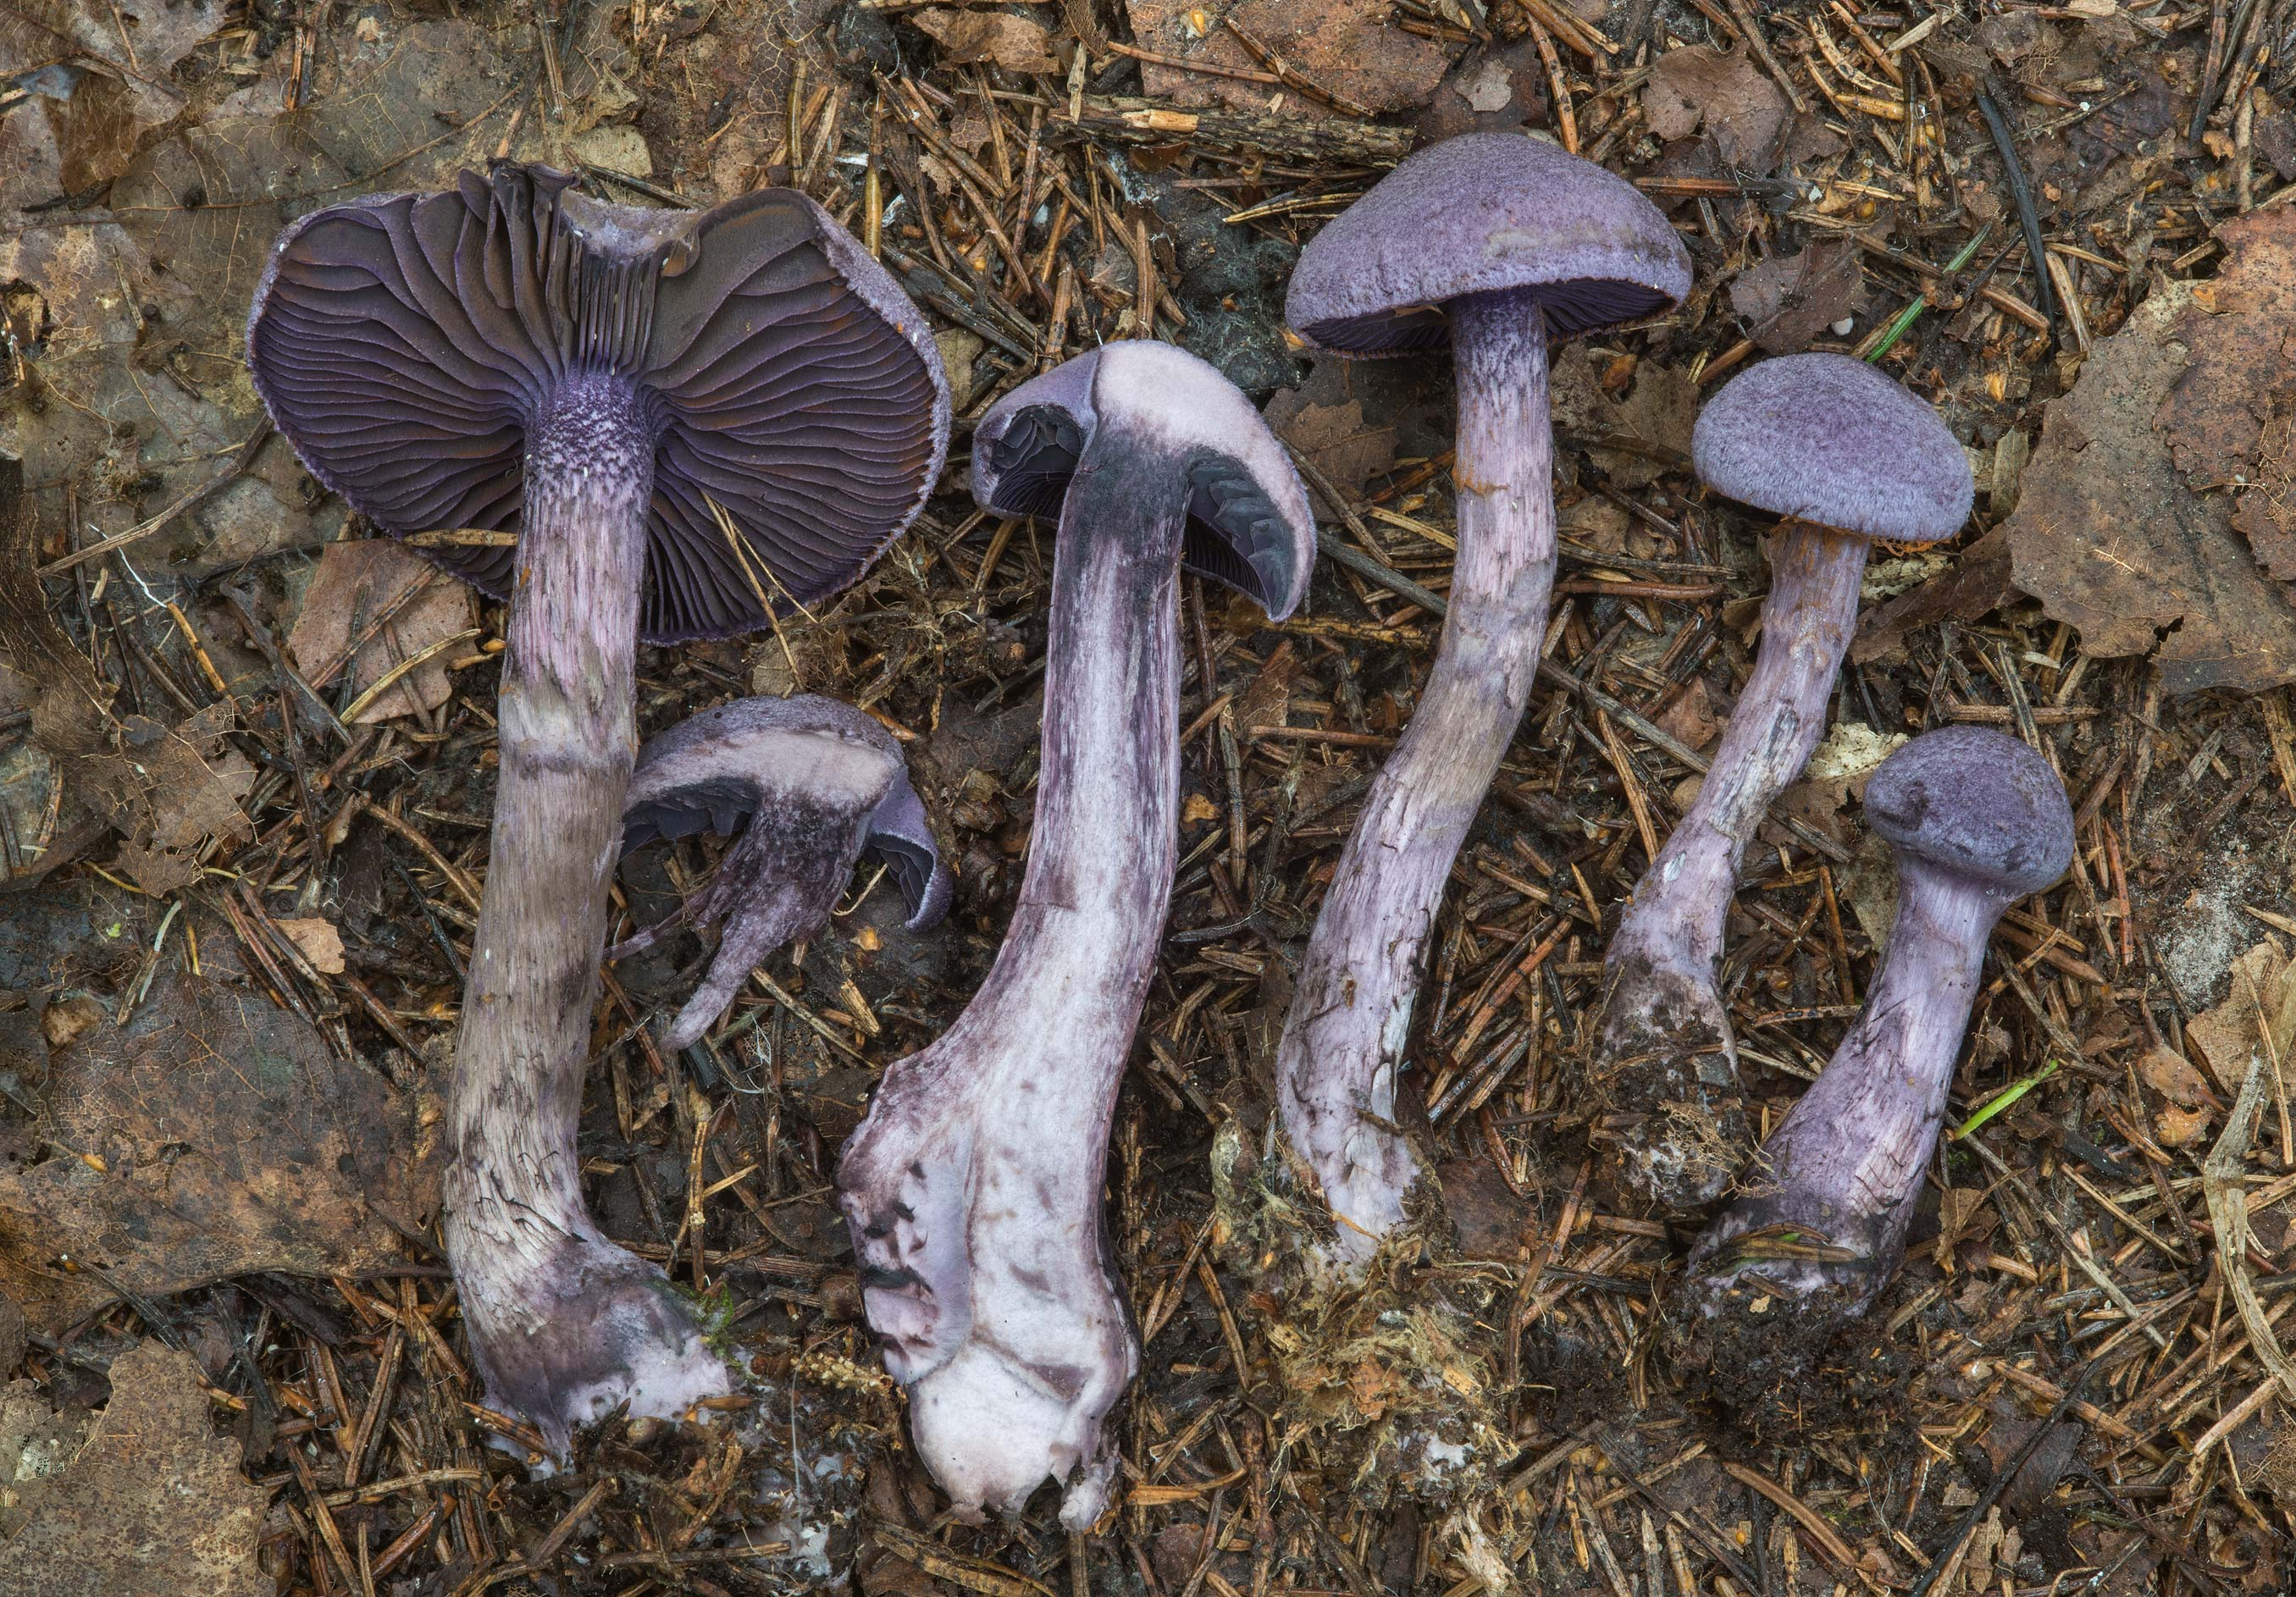 Dissected violet webcap mushrooms (Cortinarius...a suburb of St.Petersburg, Russia